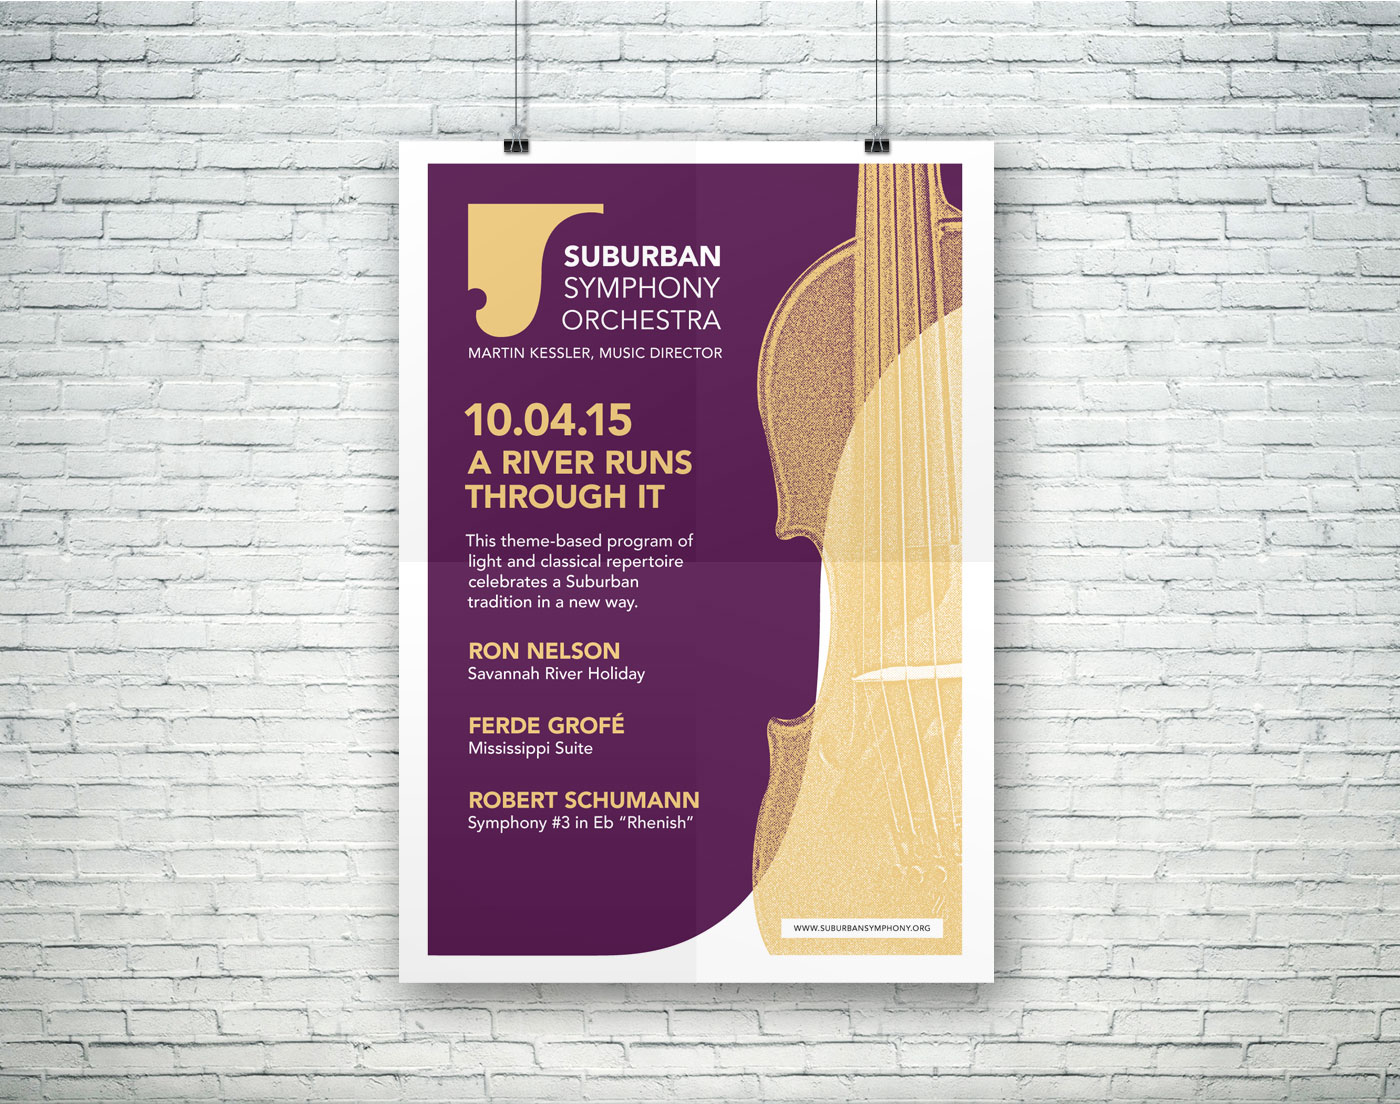 Suburban Symphony Orchestra poster